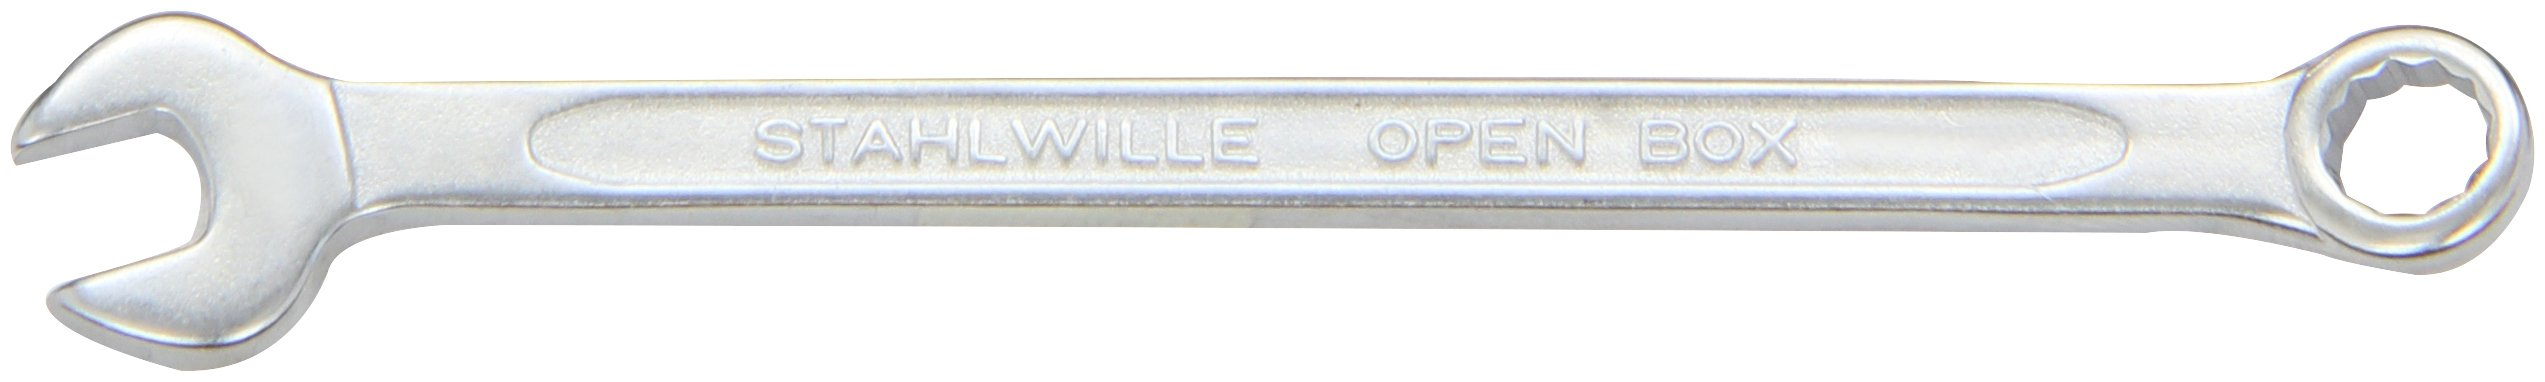 Stahlwille 13A-7/32 Steel Combination Spanner, 7/32'' Diameter, 95mm Length, 14mm Width